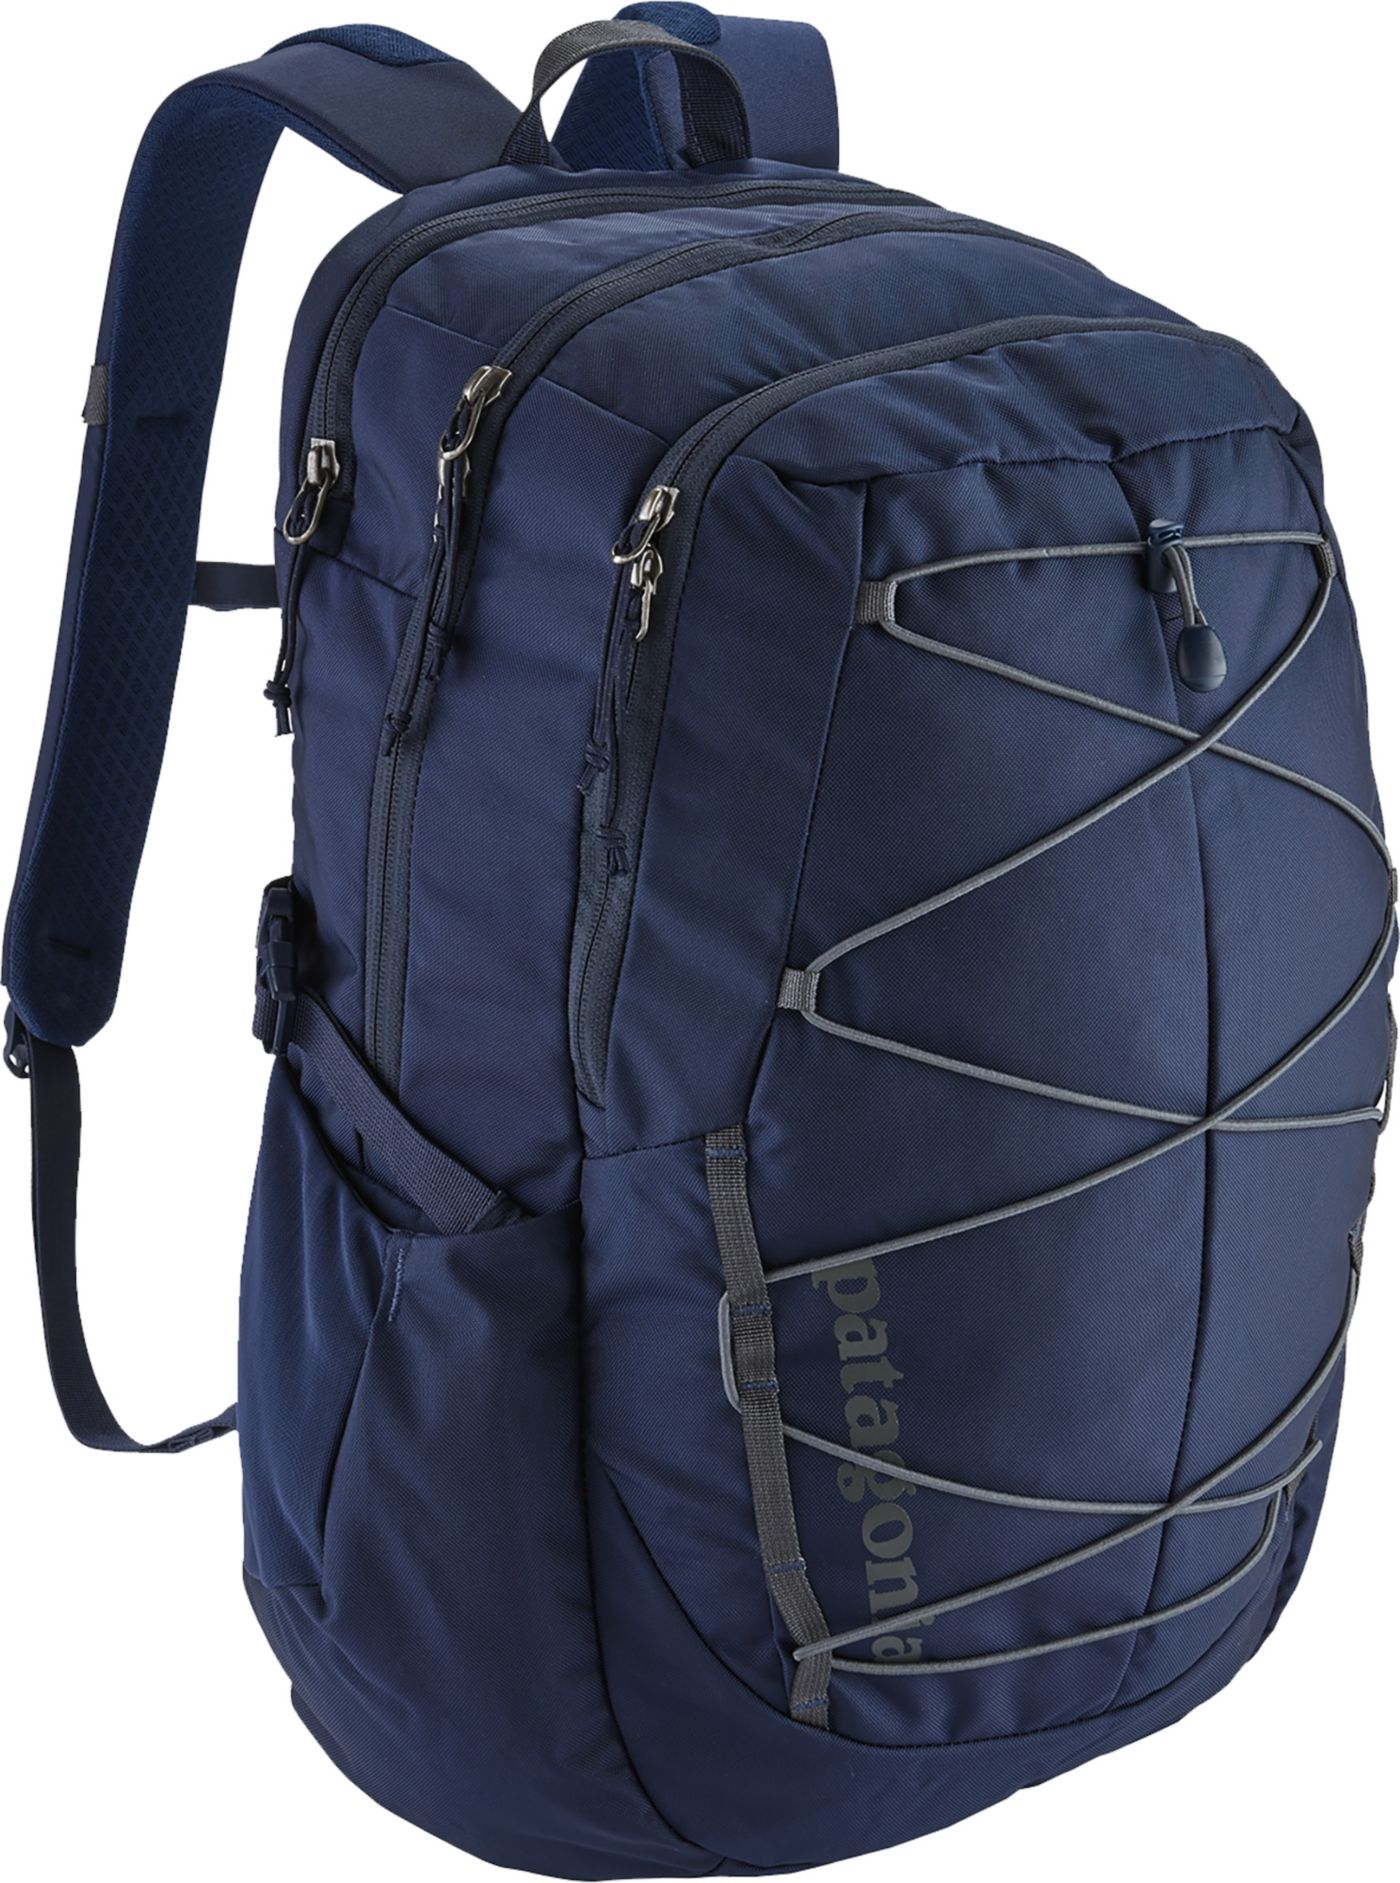 Patagonia Chacabuco 30L Backpack